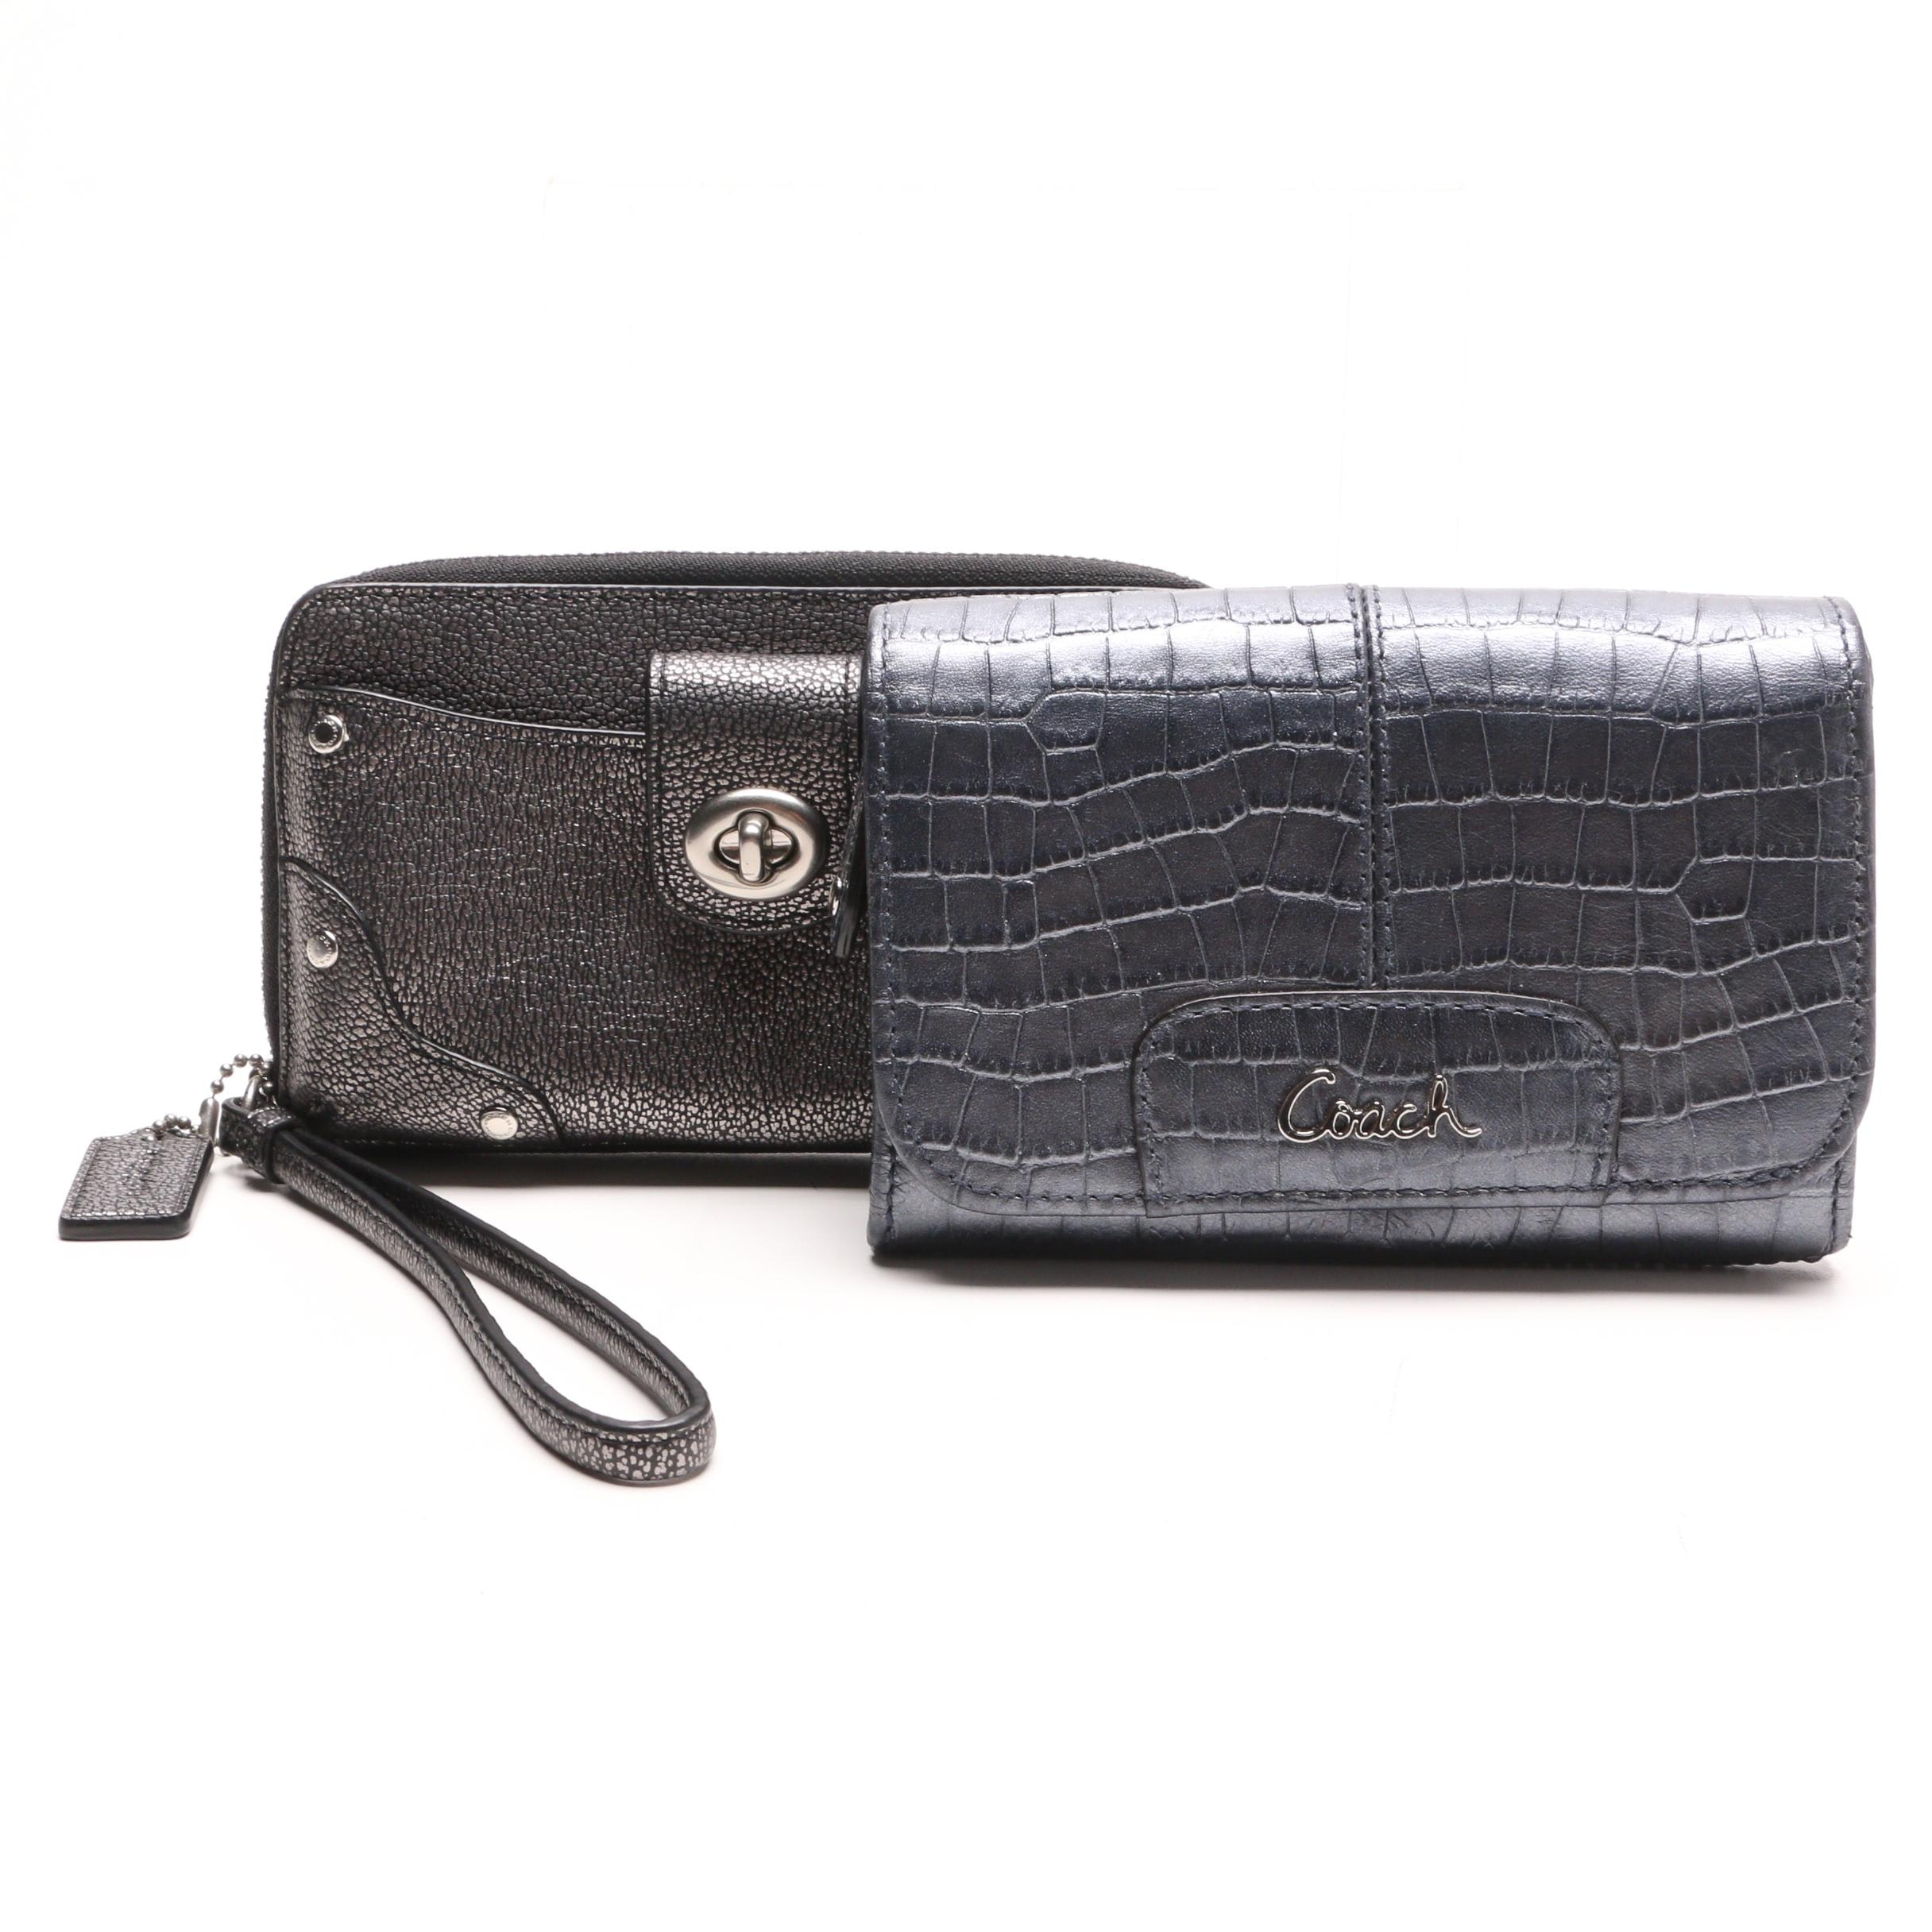 Coach Embossed Leather Wallet and Coach Leather Wristlet Wallet